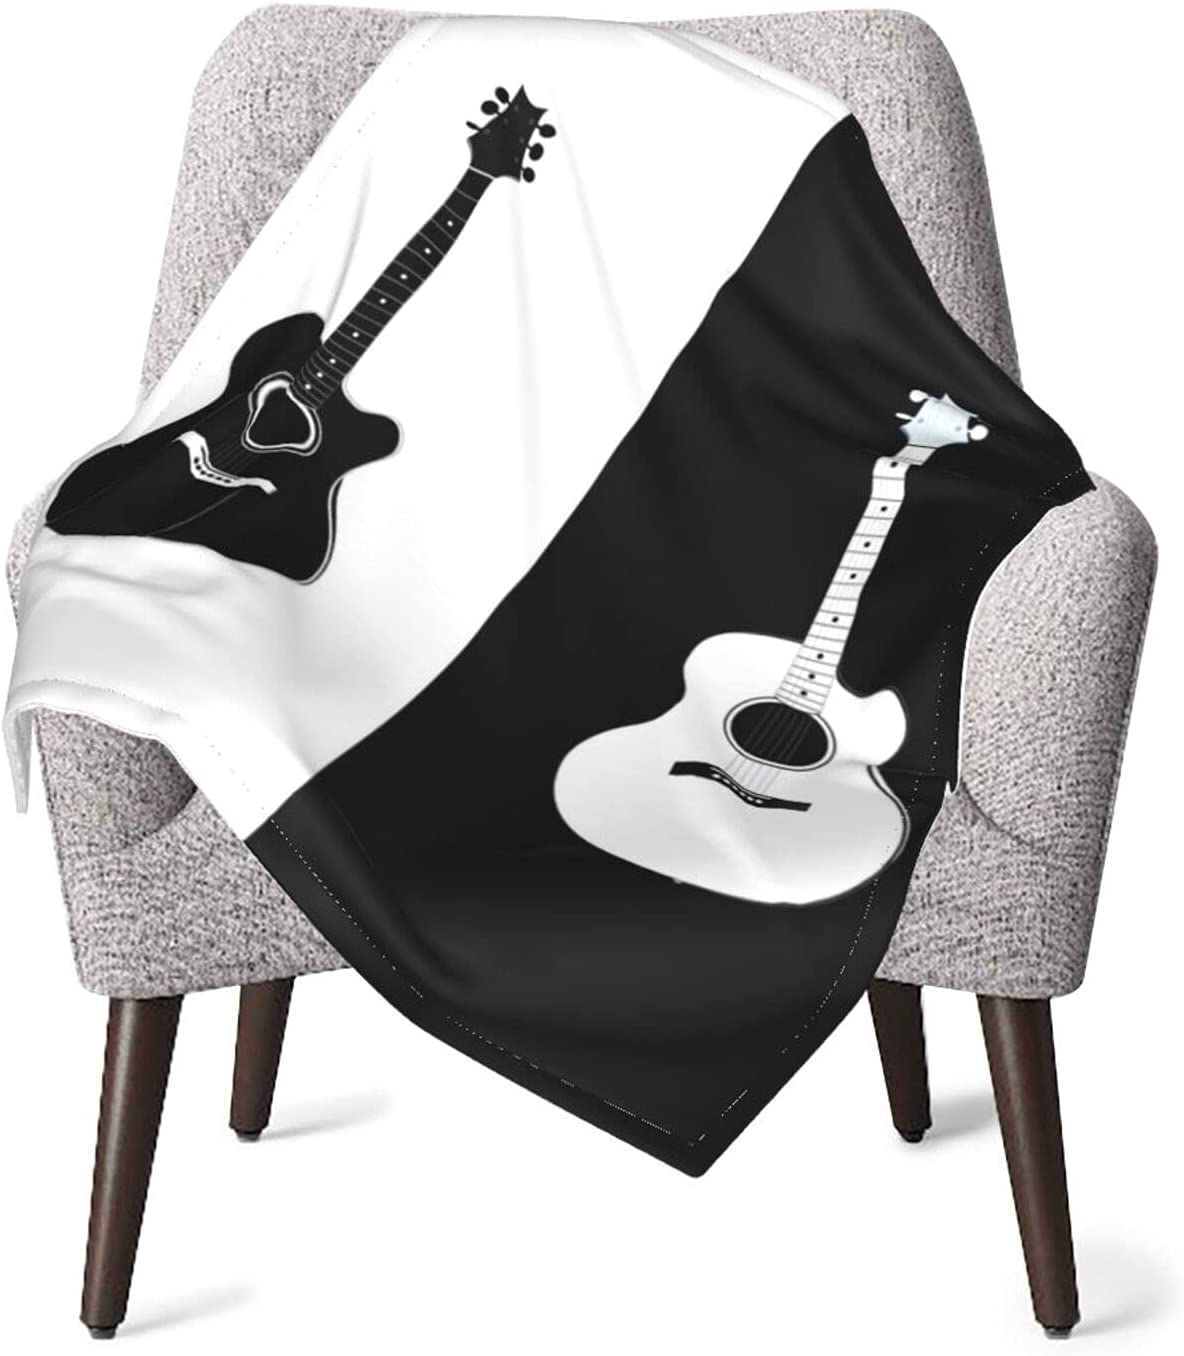 Acoustic Guitar Free shipping in Black and White Layer Sup Blanket Don't miss the campaign Double Baby